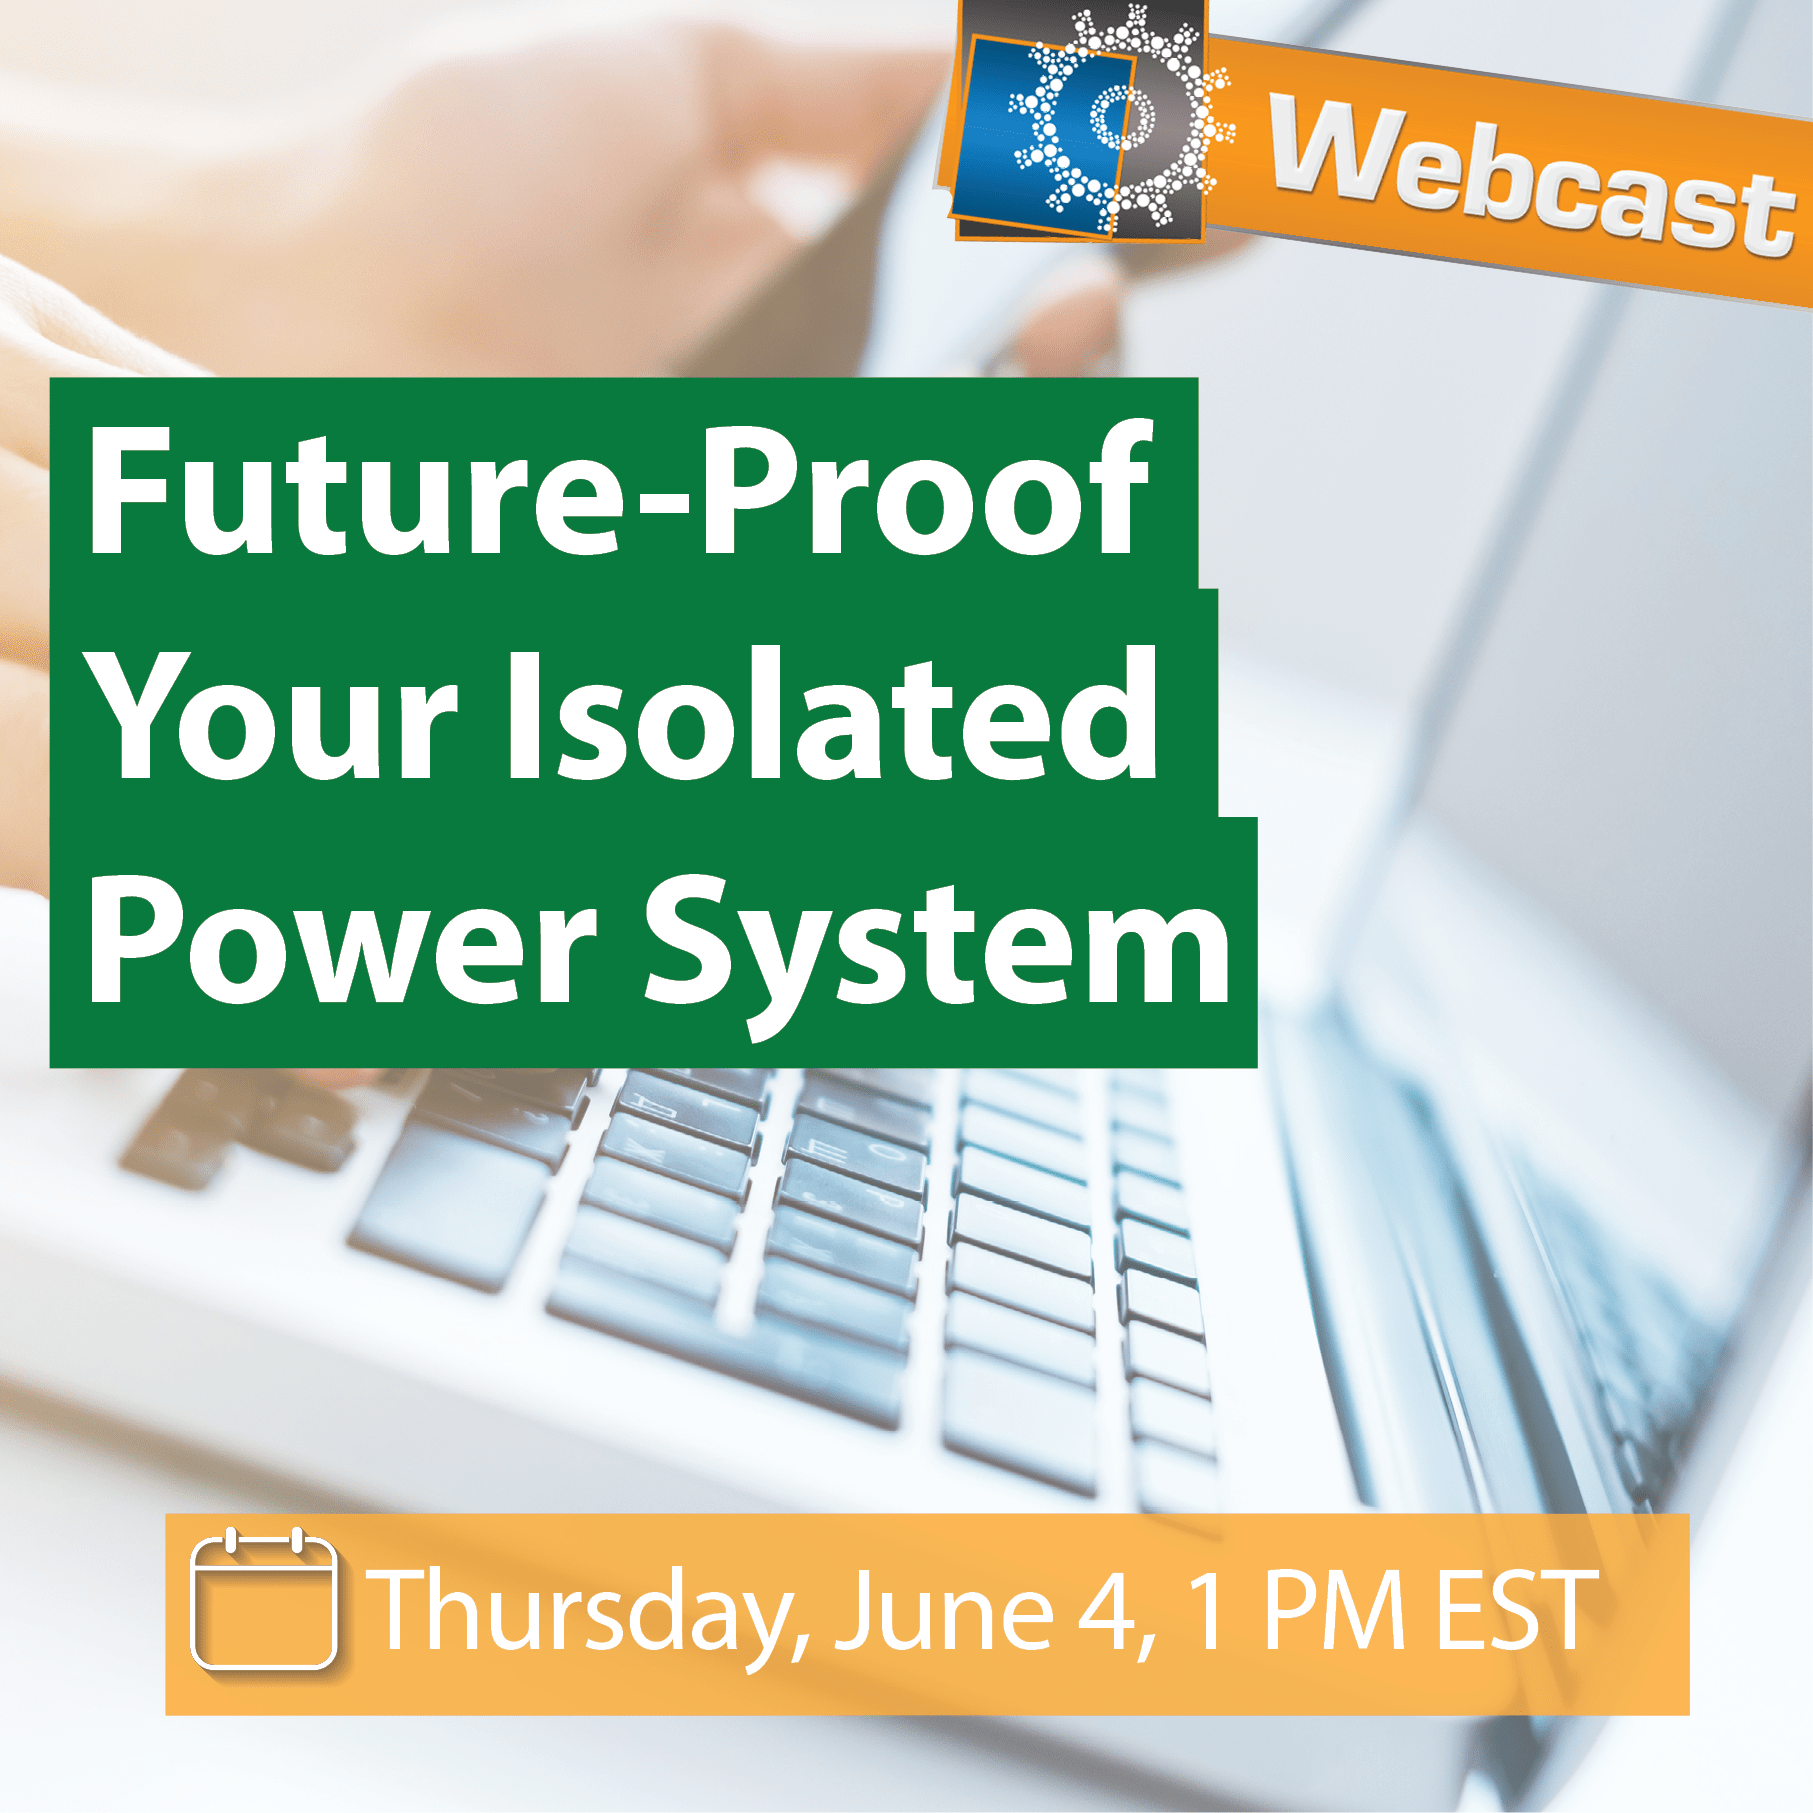 Webcast: Future-Proof your Isolated Power System